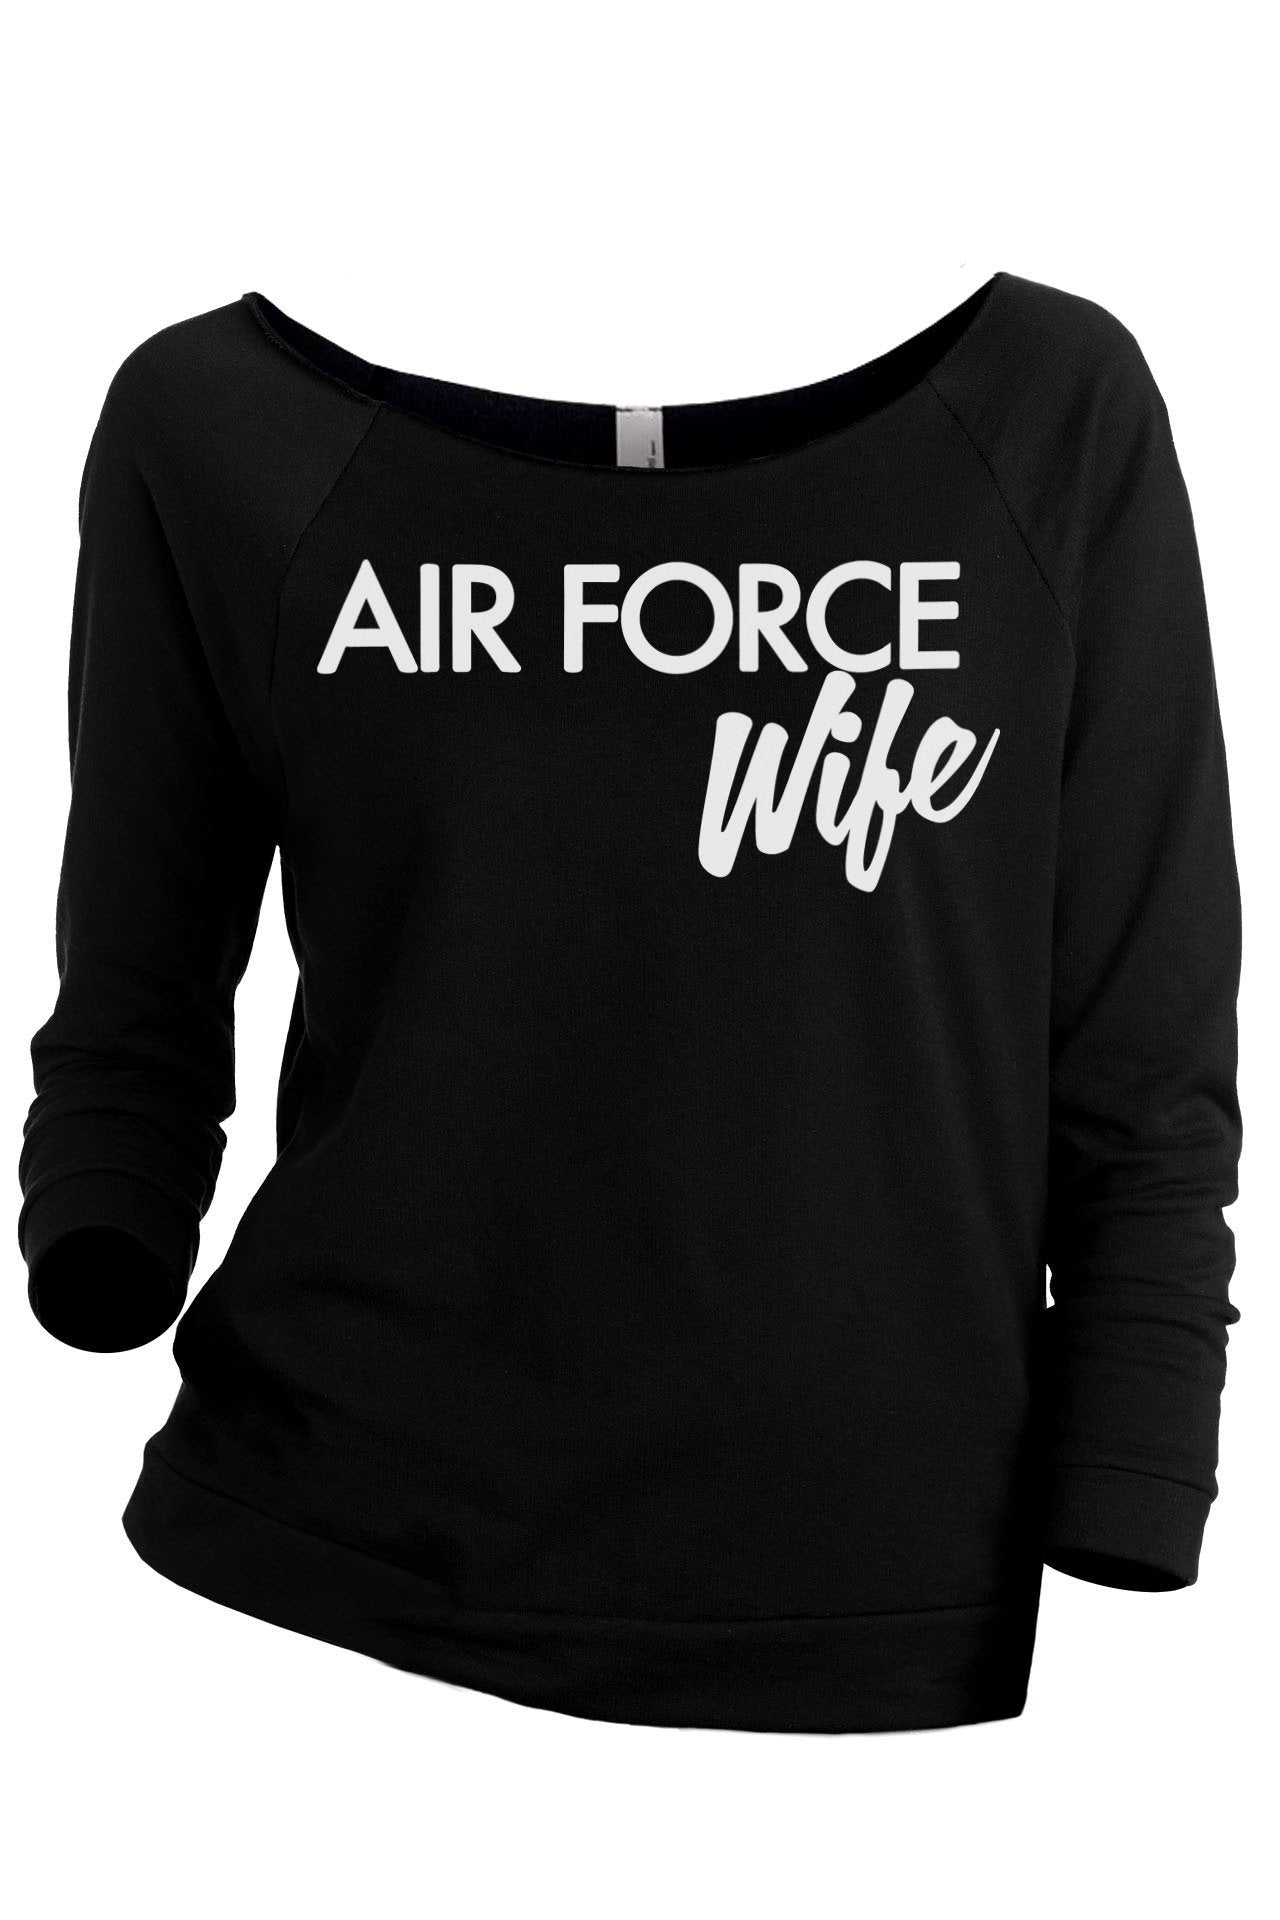 Air Force Wife Women's Graphic Printed Lightweight Slouchy 3/4 Sleeves Sweatshirt Sport Grey